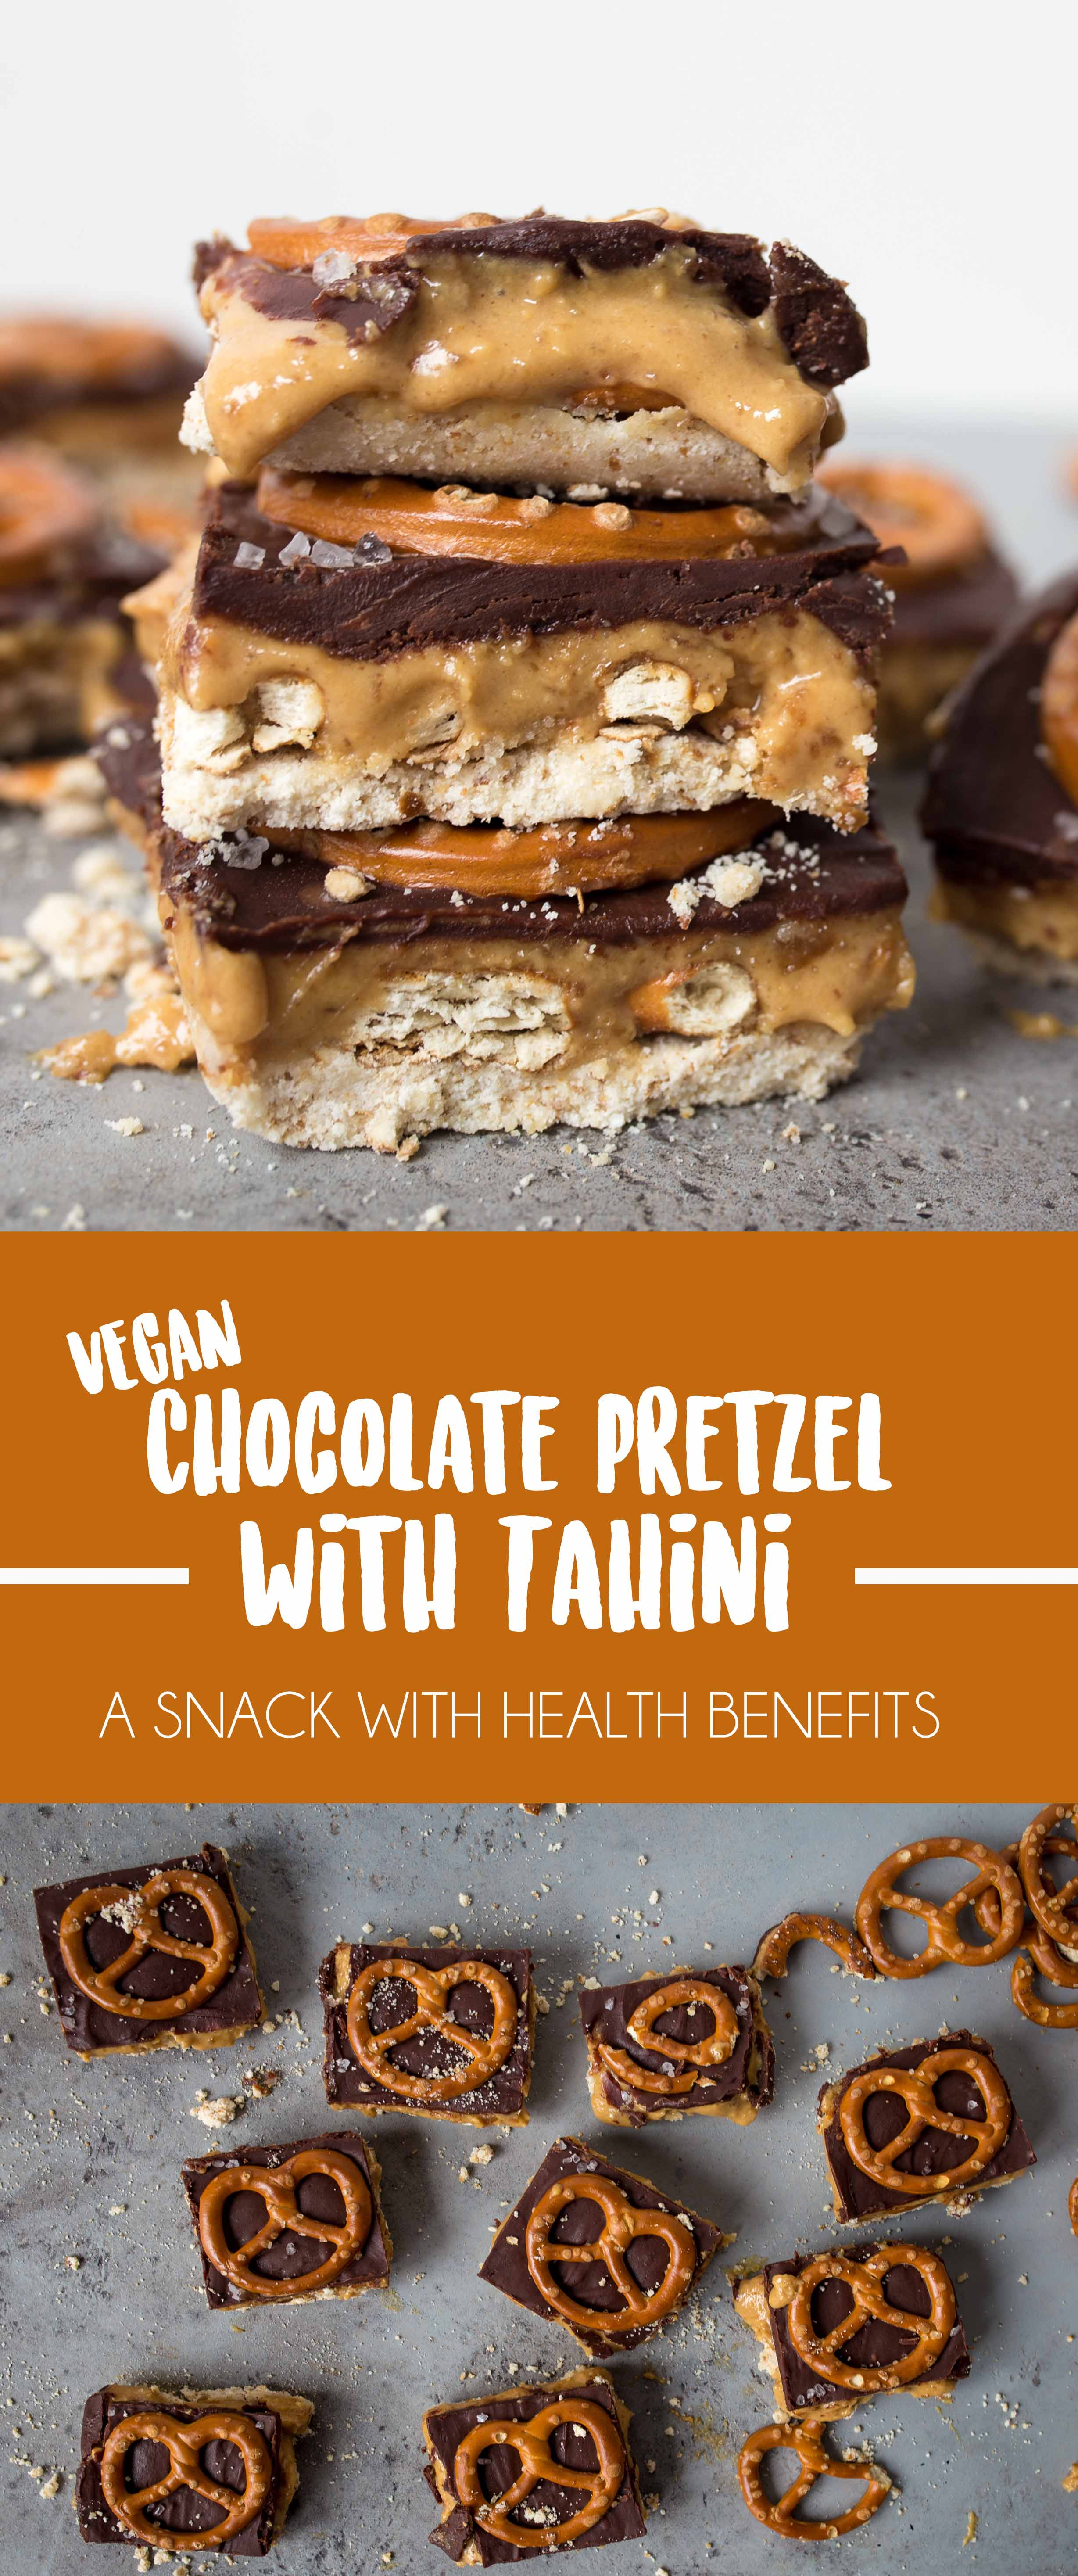 Chocolate coated Tahini Caramel Pretzel Bars